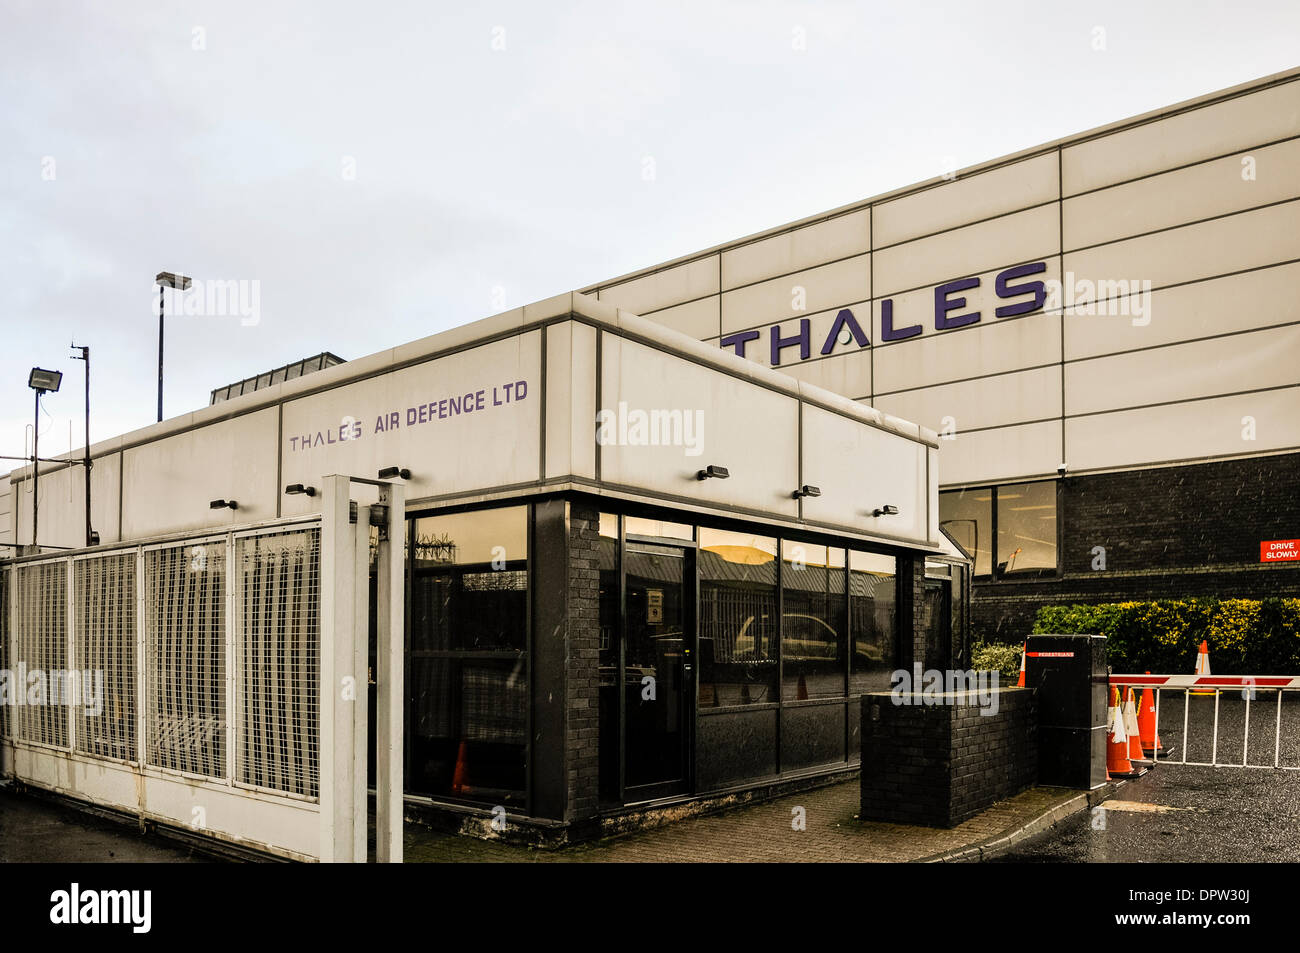 Belfast, Northern Ireland. 15 Jan 2014. Thales UK win £100m Indonesian contract for Starstreak missiles and radar systems, which are manufactured in Belfast. Credit:  Stephen Barnes/Alamy Live News - Stock Image